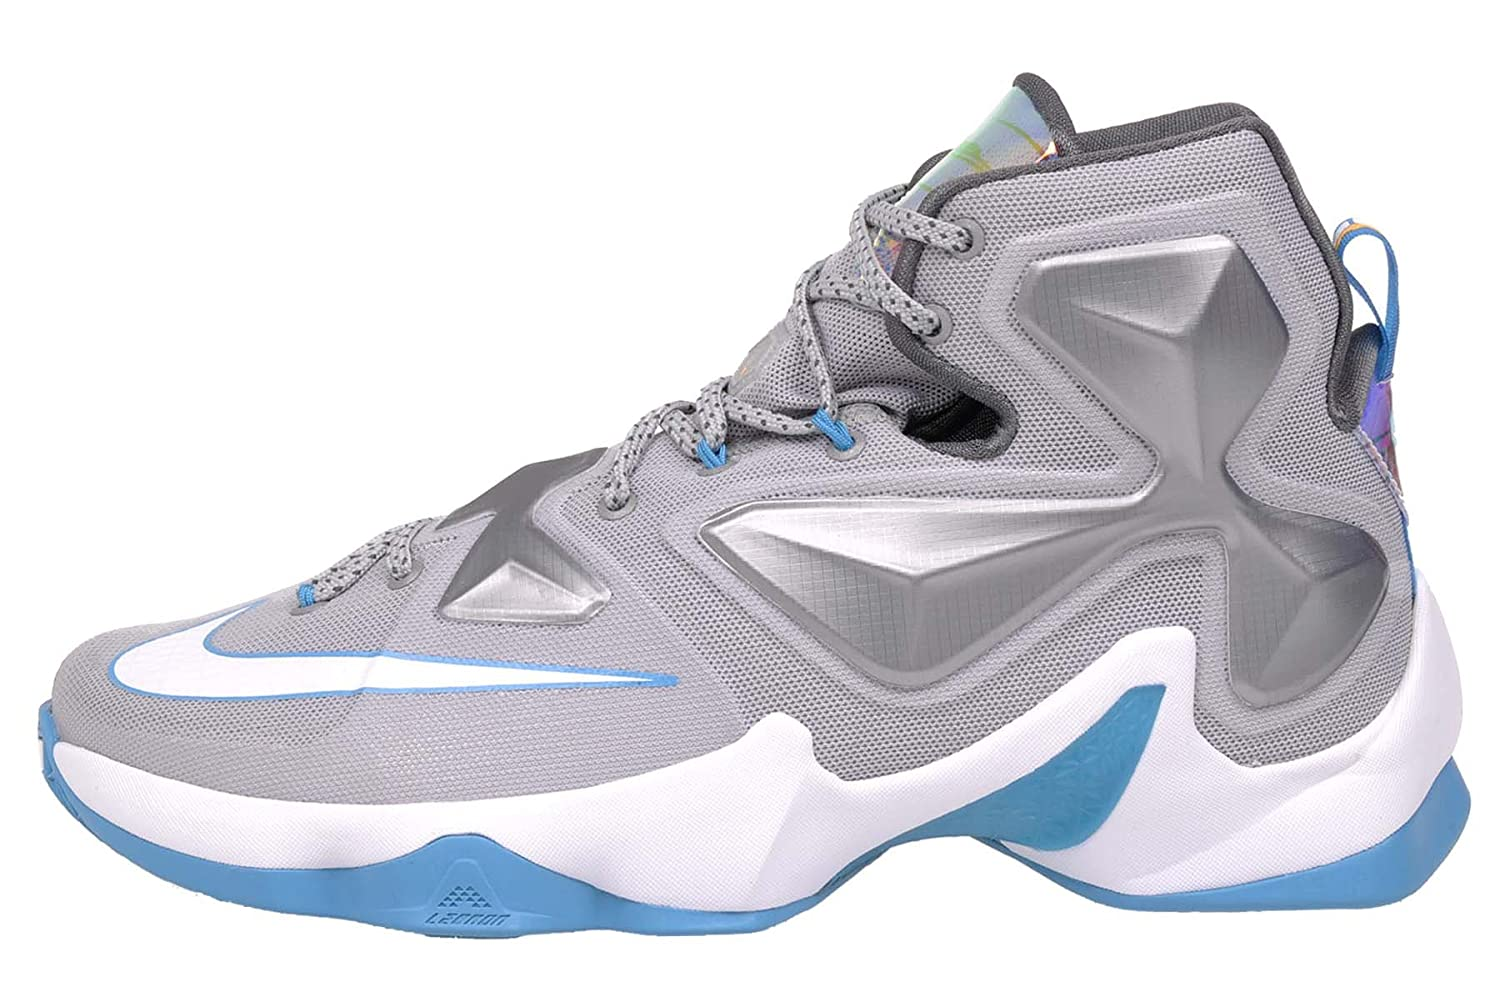 huge discount ae7ae 420e8 Amazon.com   Nike Men s Lebron XIII WOLF GREY WHITE-BLUE LAGOON-DARK GREY  Basketball Shoe - 10.5 D(M) US   Basketball